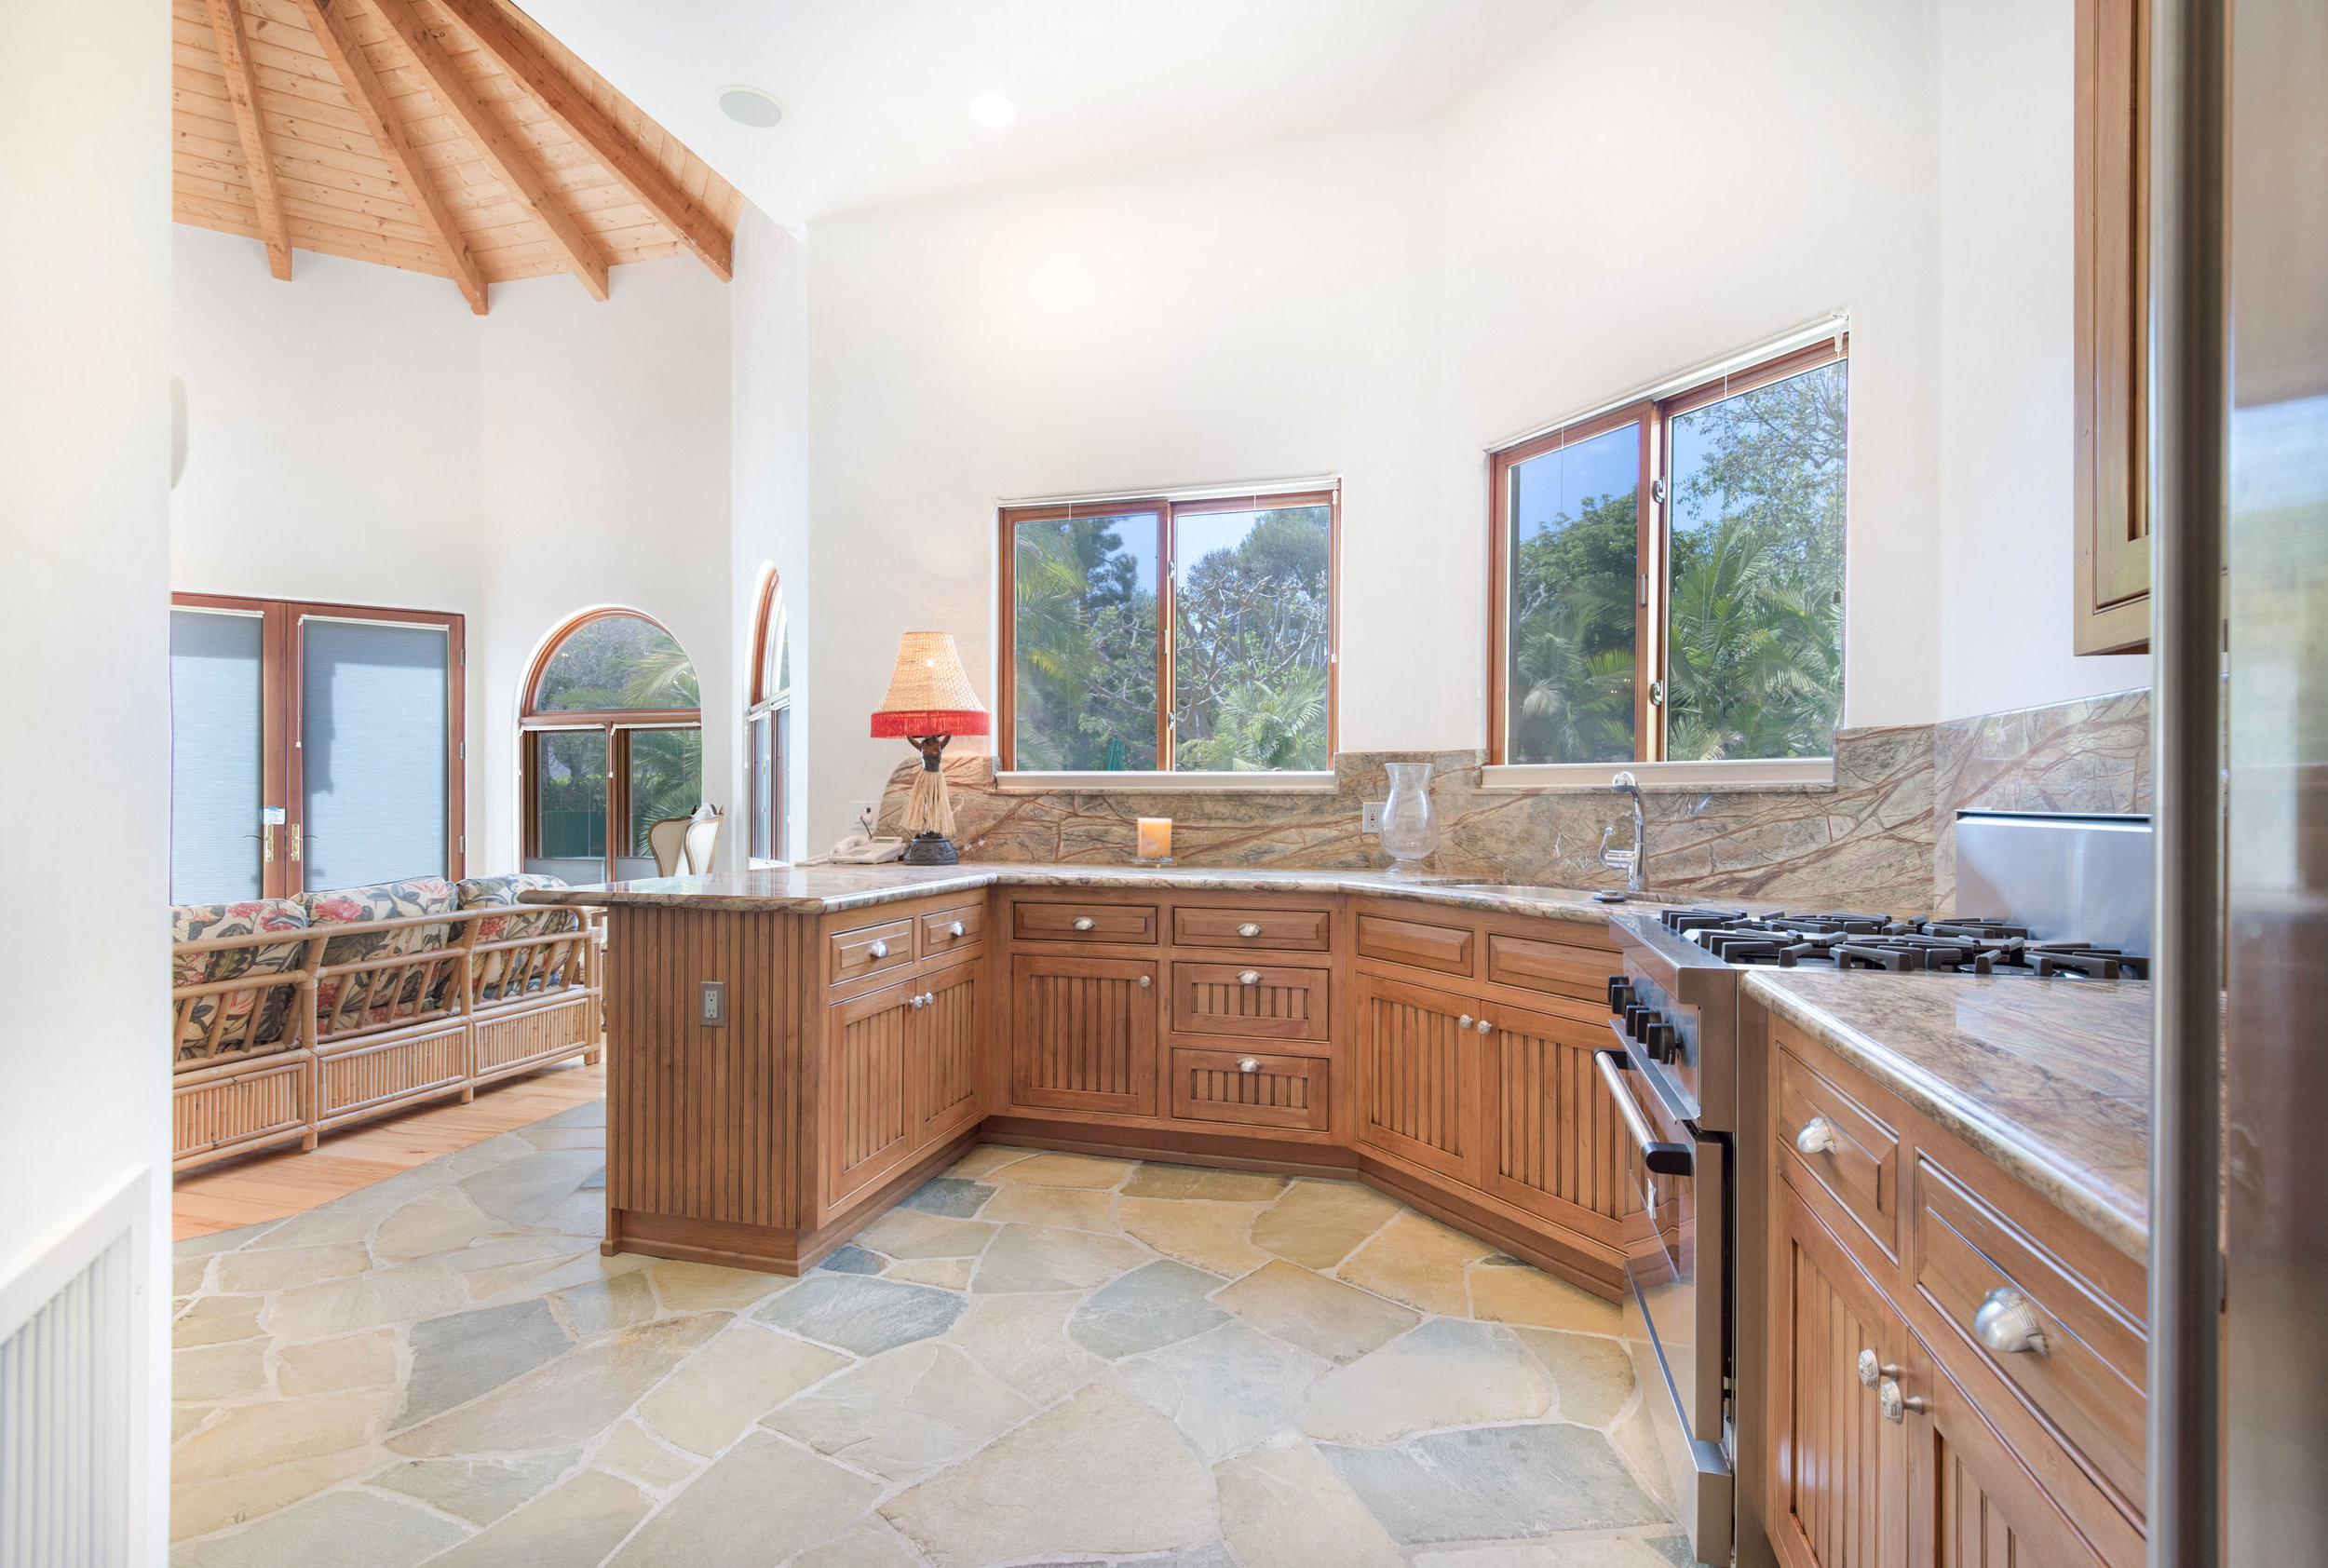 024 guest house 1 6405 bonsall Malibu For Sale The Malibu Life Team Luxury Real Estate.jpg